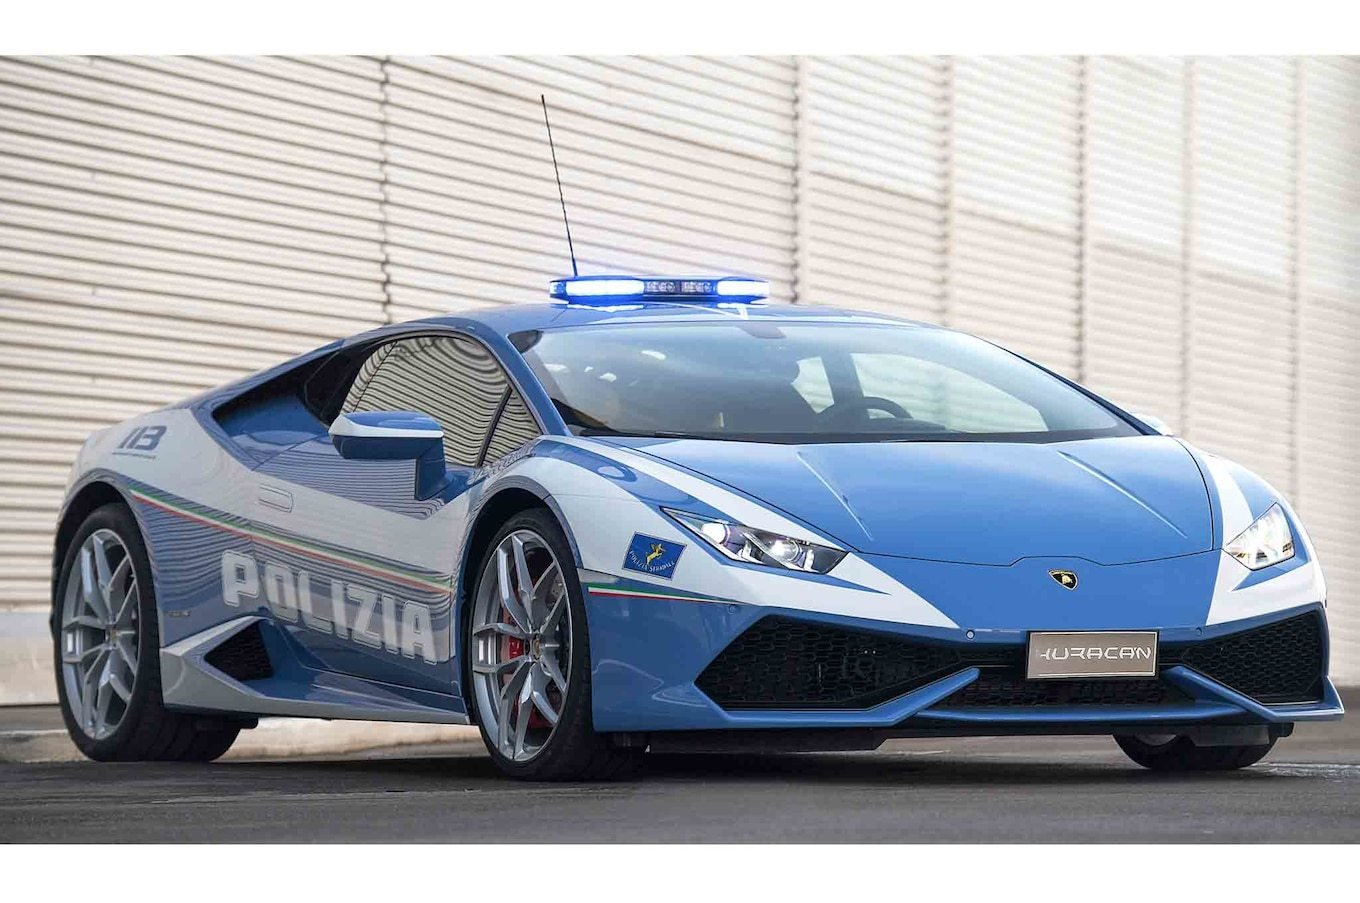 New You Couldn T Outrun This Lamborghini Huracan Police Car On This Month